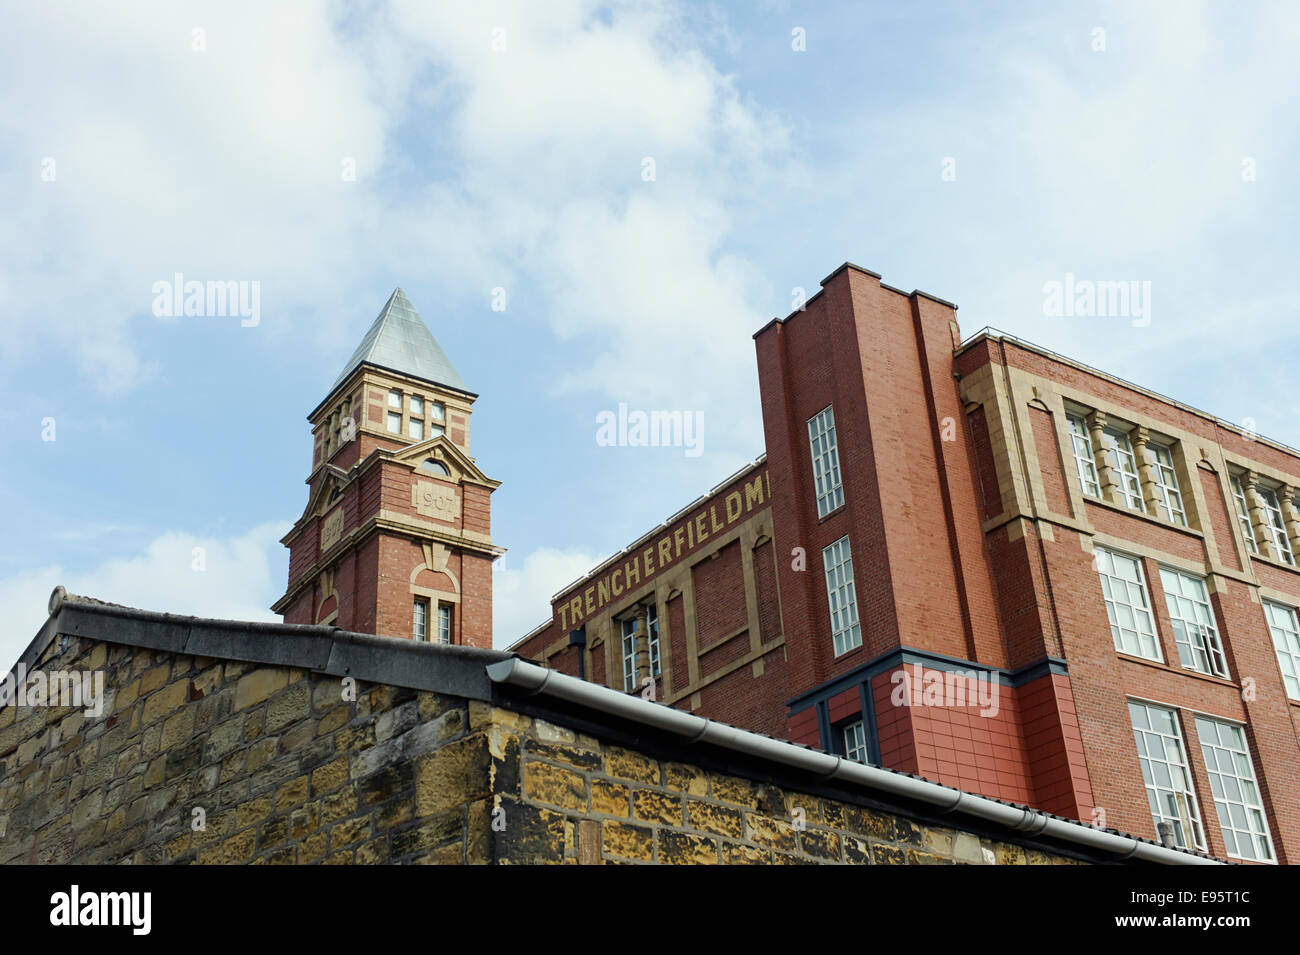 Trencherfield Mill in Wigan - Stock Image